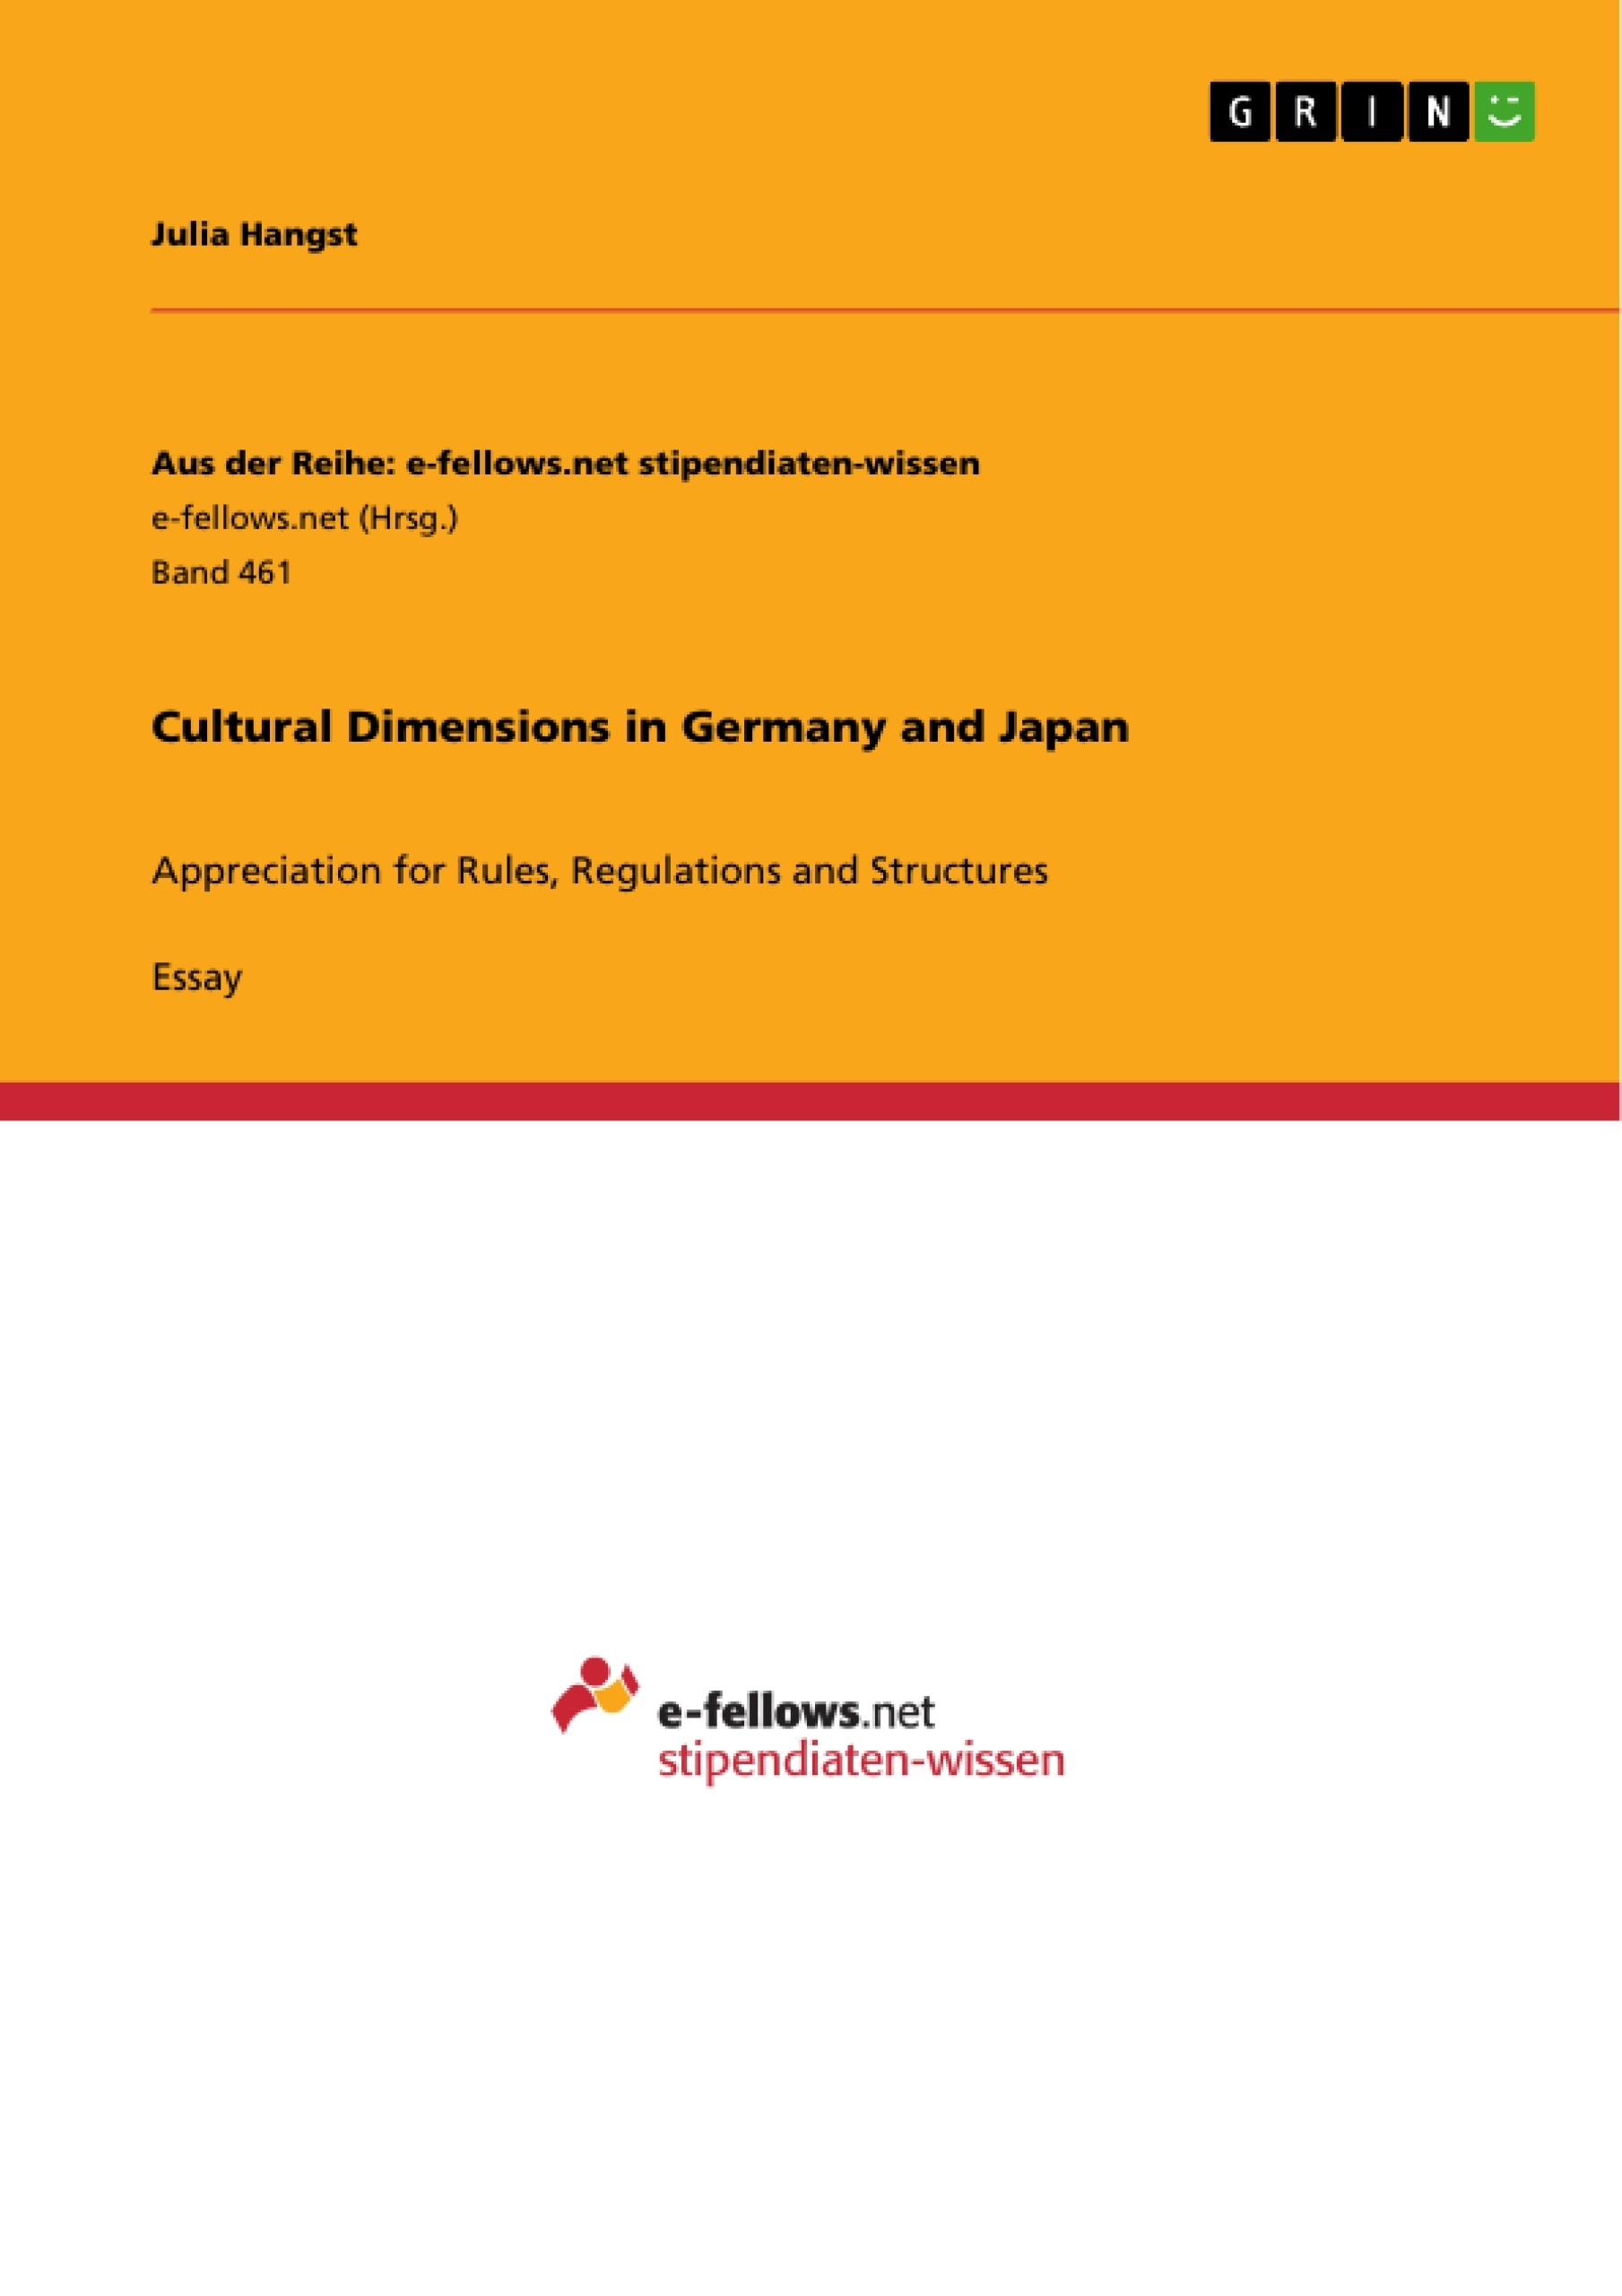 Title: Cultural Dimensions in Germany and Japan